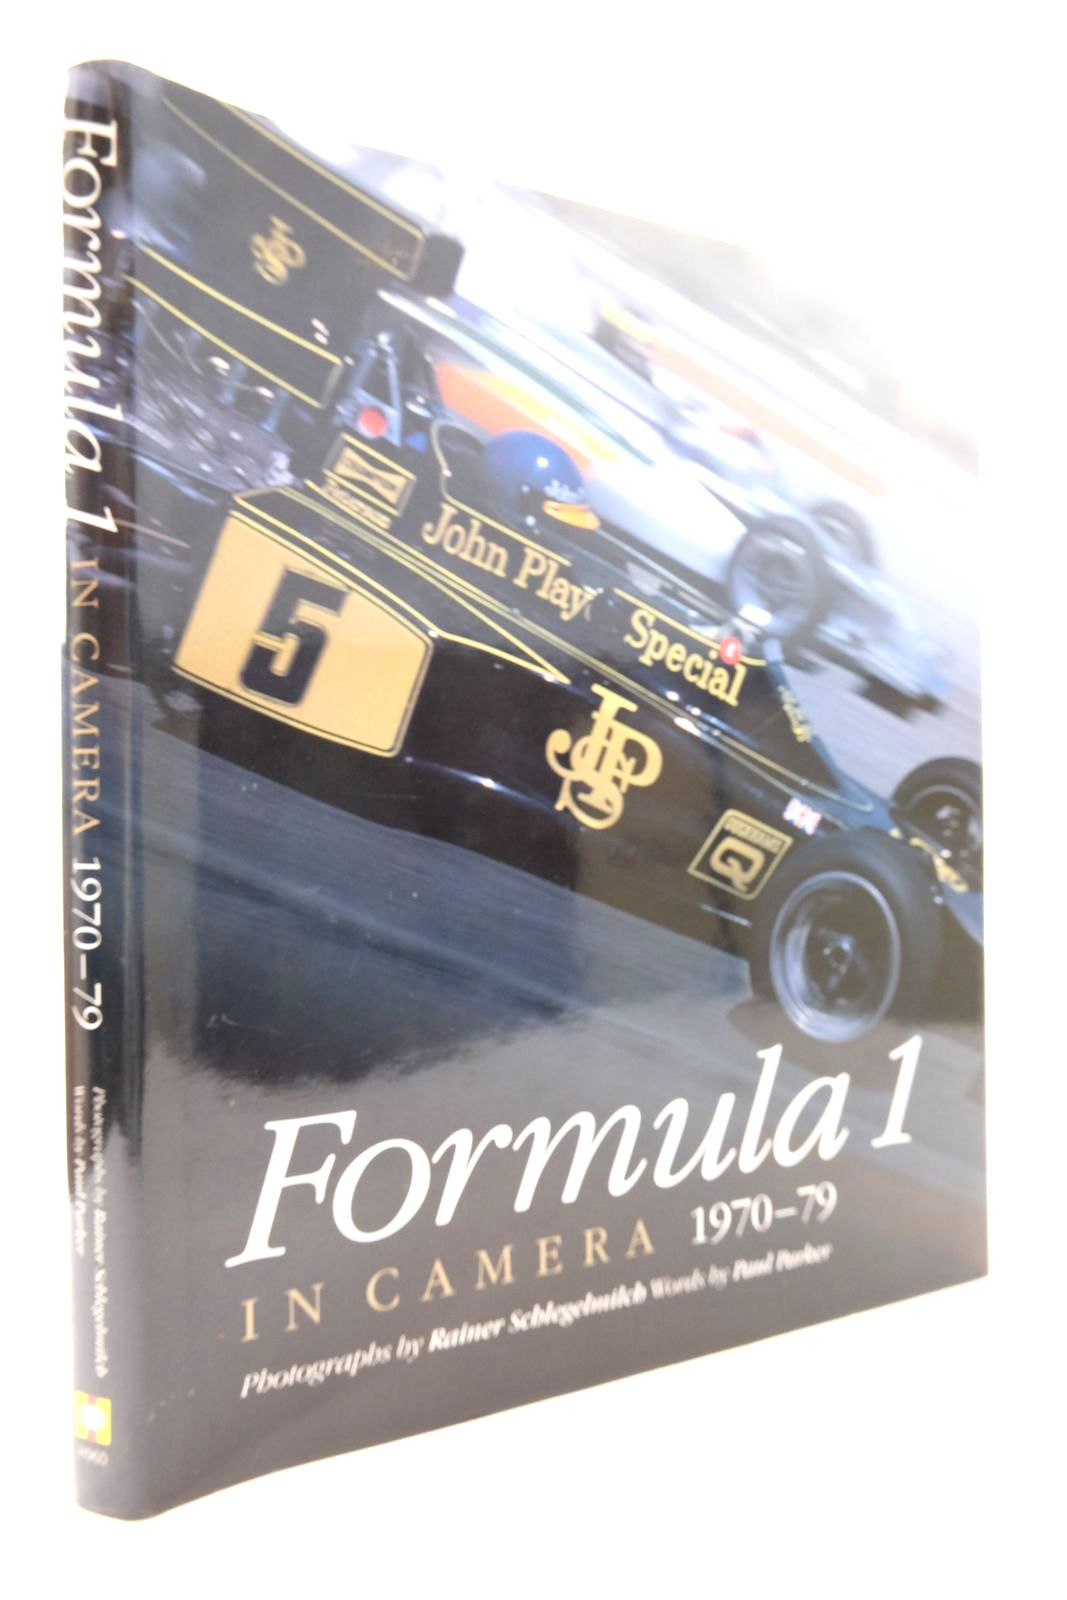 Photo of FORMULA 1 IN CAMERA 1970-79- Stock Number: 2133359